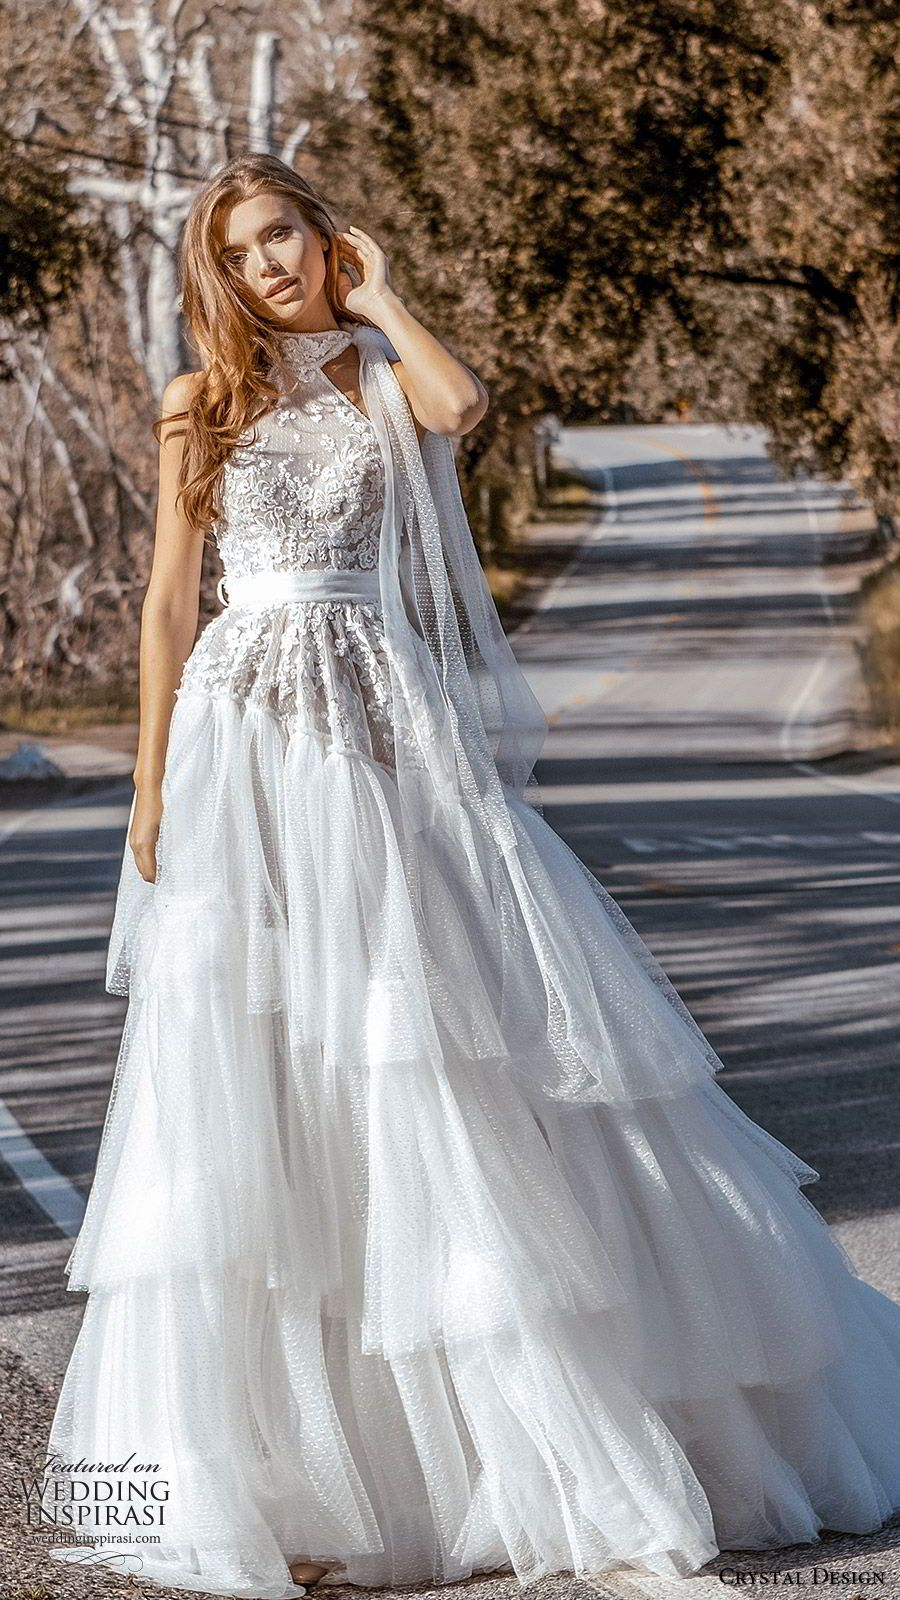 Crystal Design Couture 2020 Wedding Dresses Catching The Wind Bridal Collection Wedding Inspirasi Couture Bridal Gowns Princess Wedding Dresses A Line Wedding Dress